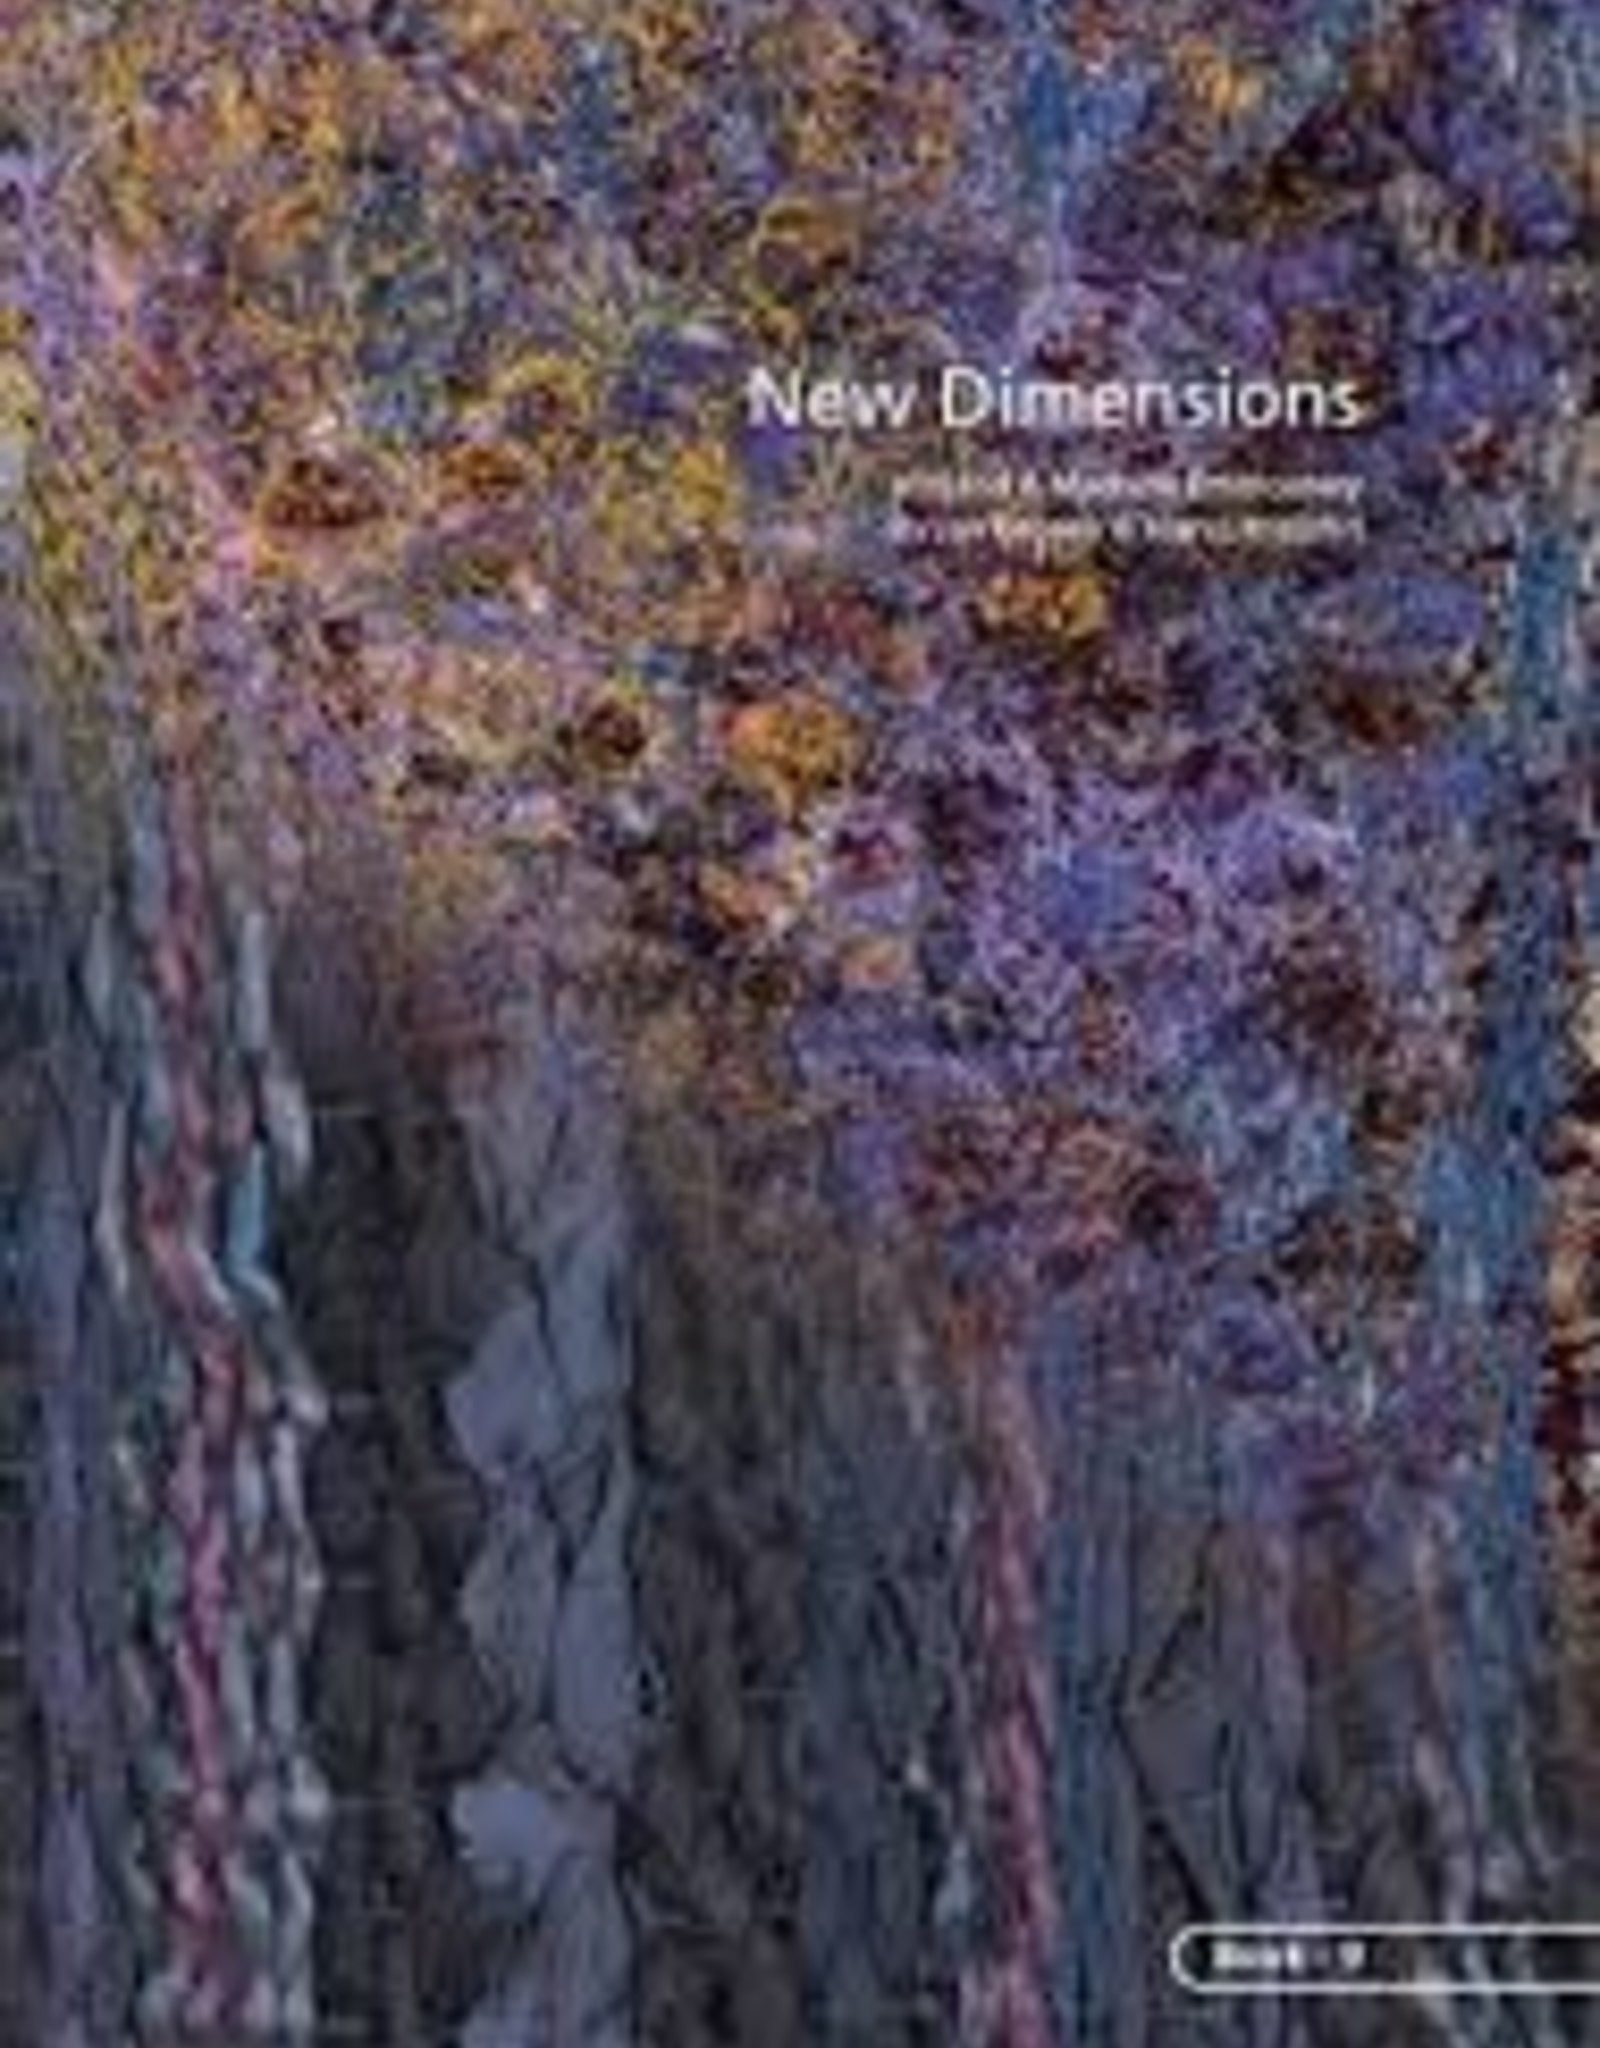 New Dimensions in Hand & Machine embroidery / Jan Beaney & Jean Littlejohn